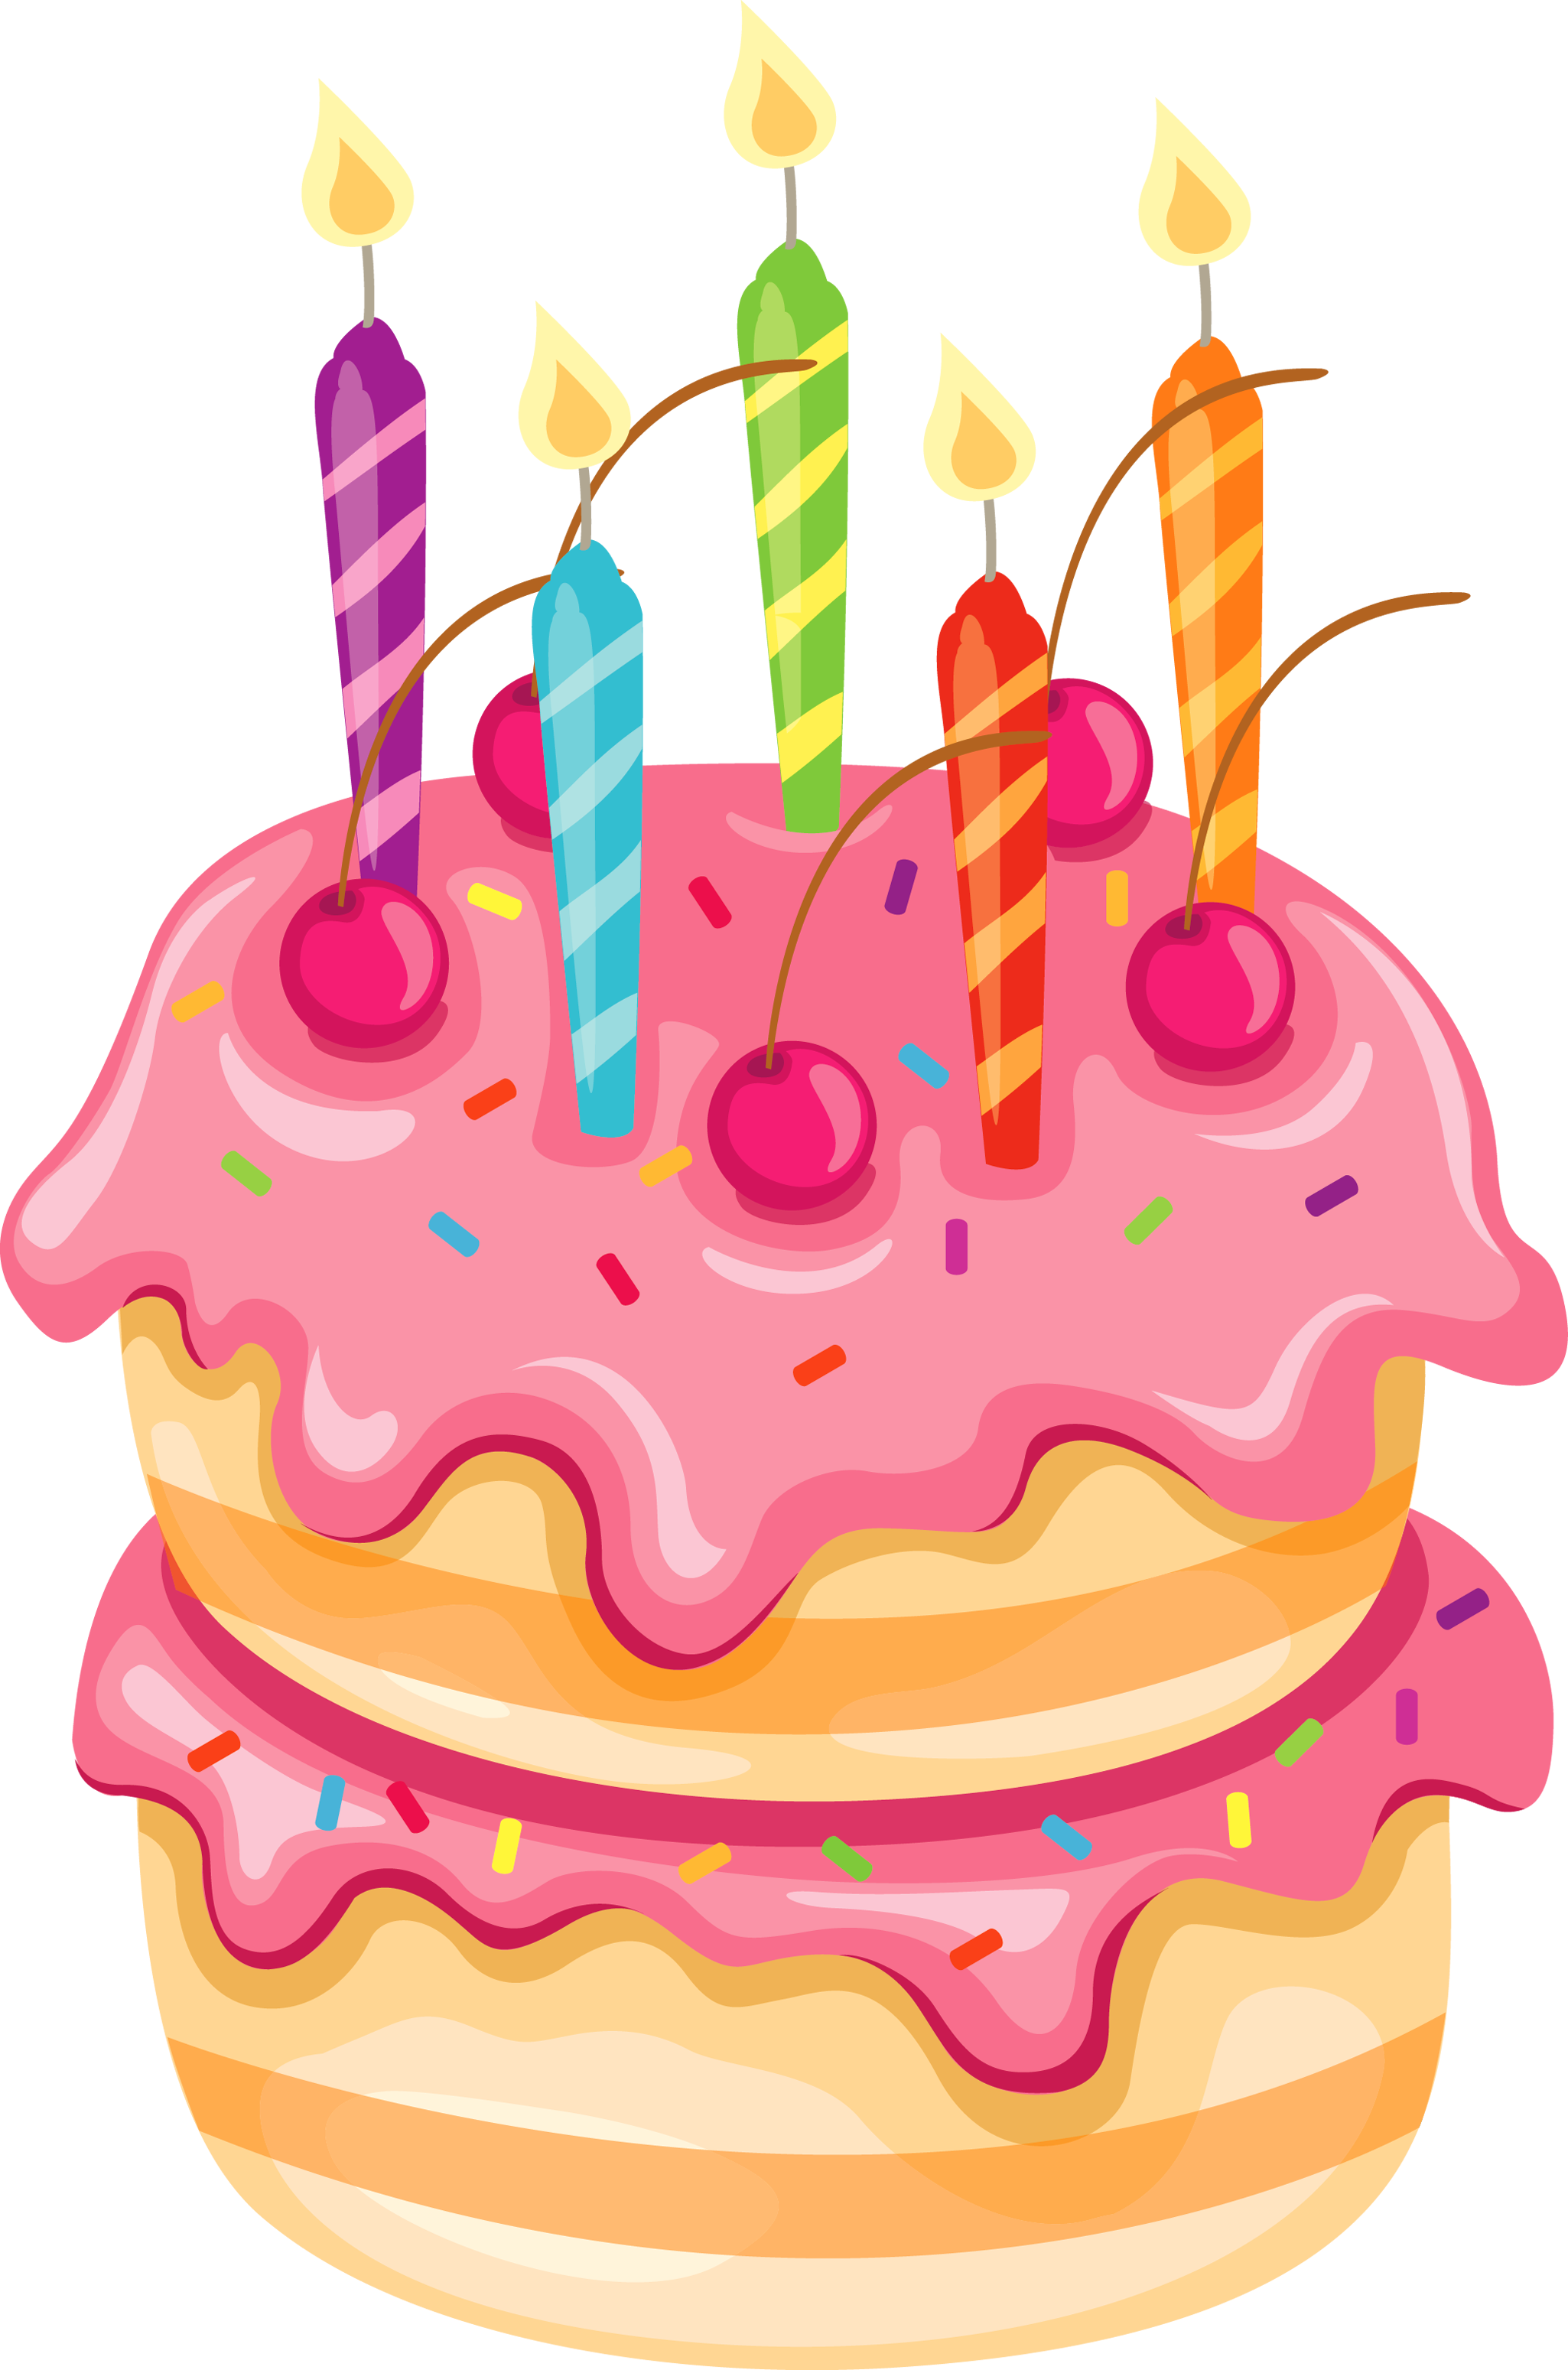 Pink cake png. With candles clipart aniversaris